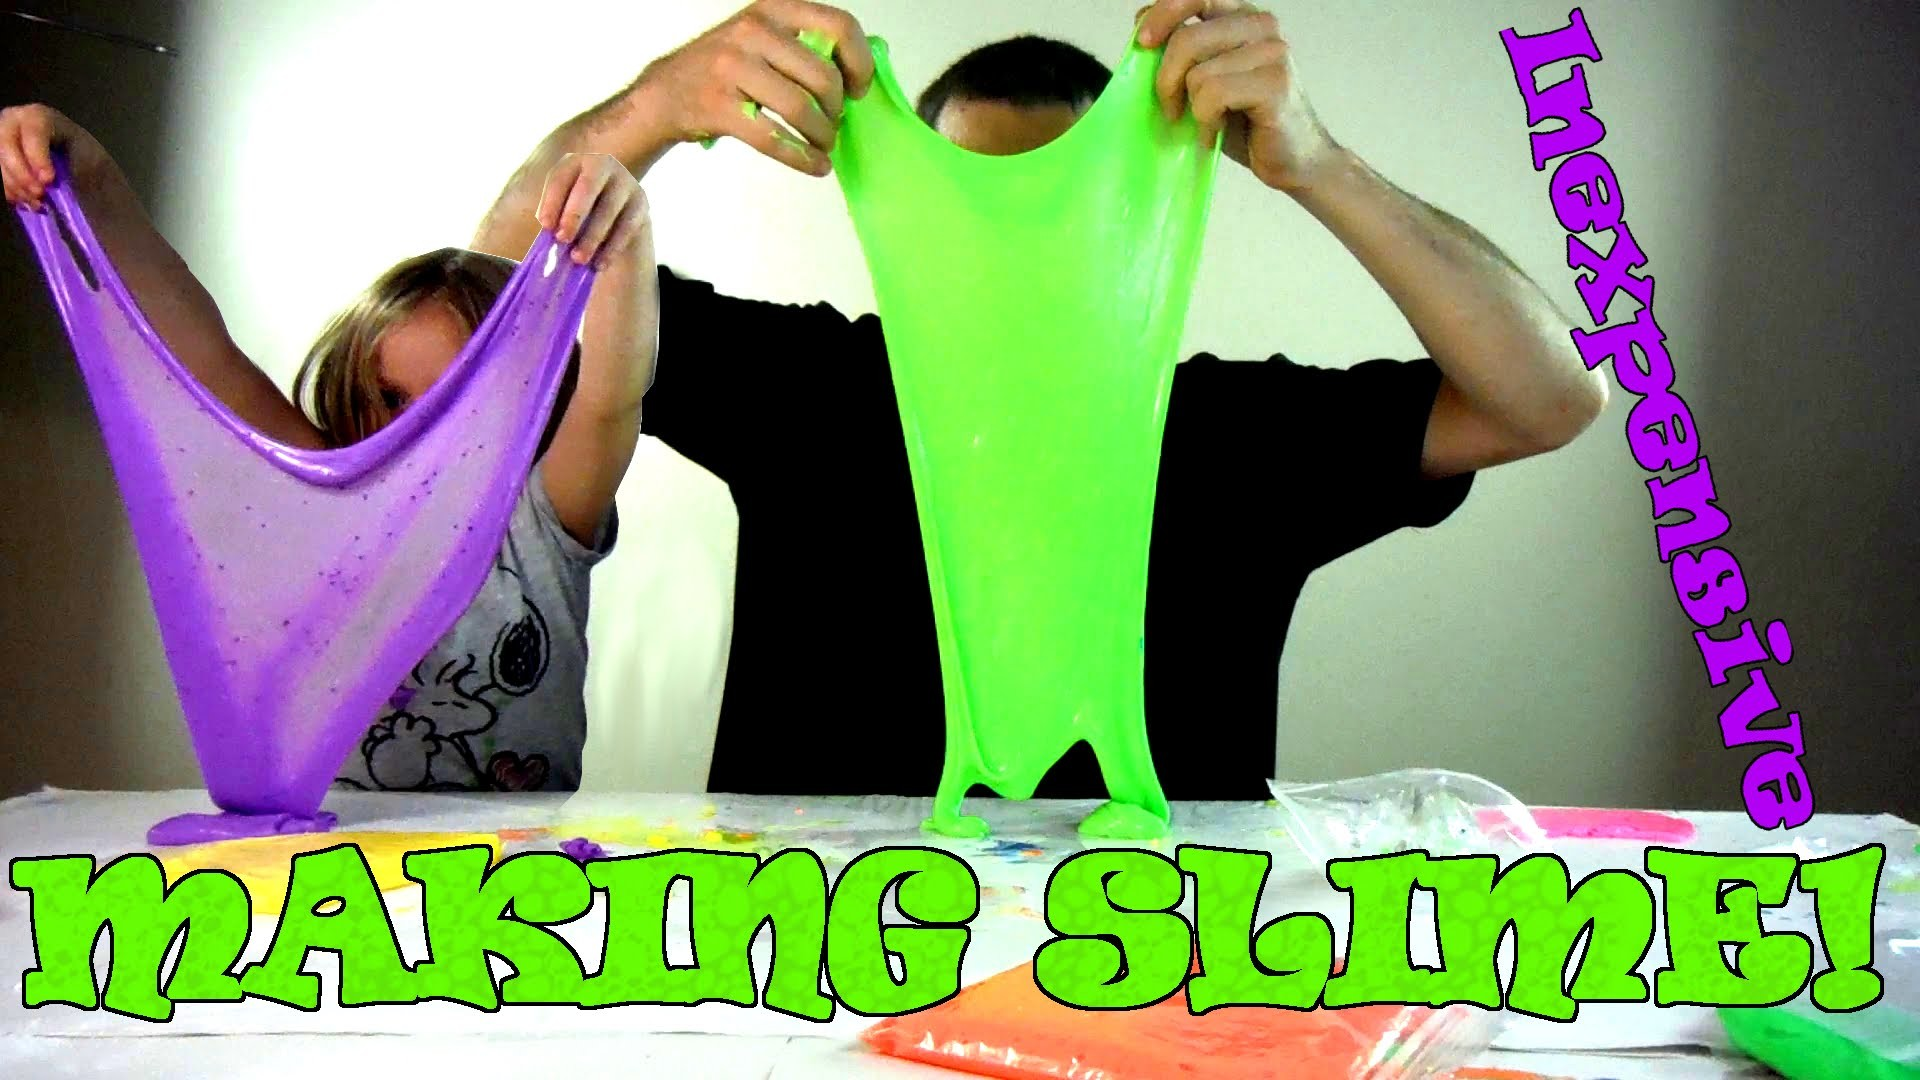 DIY | How to Make Awesome Slime (gak) With Borax and Glue